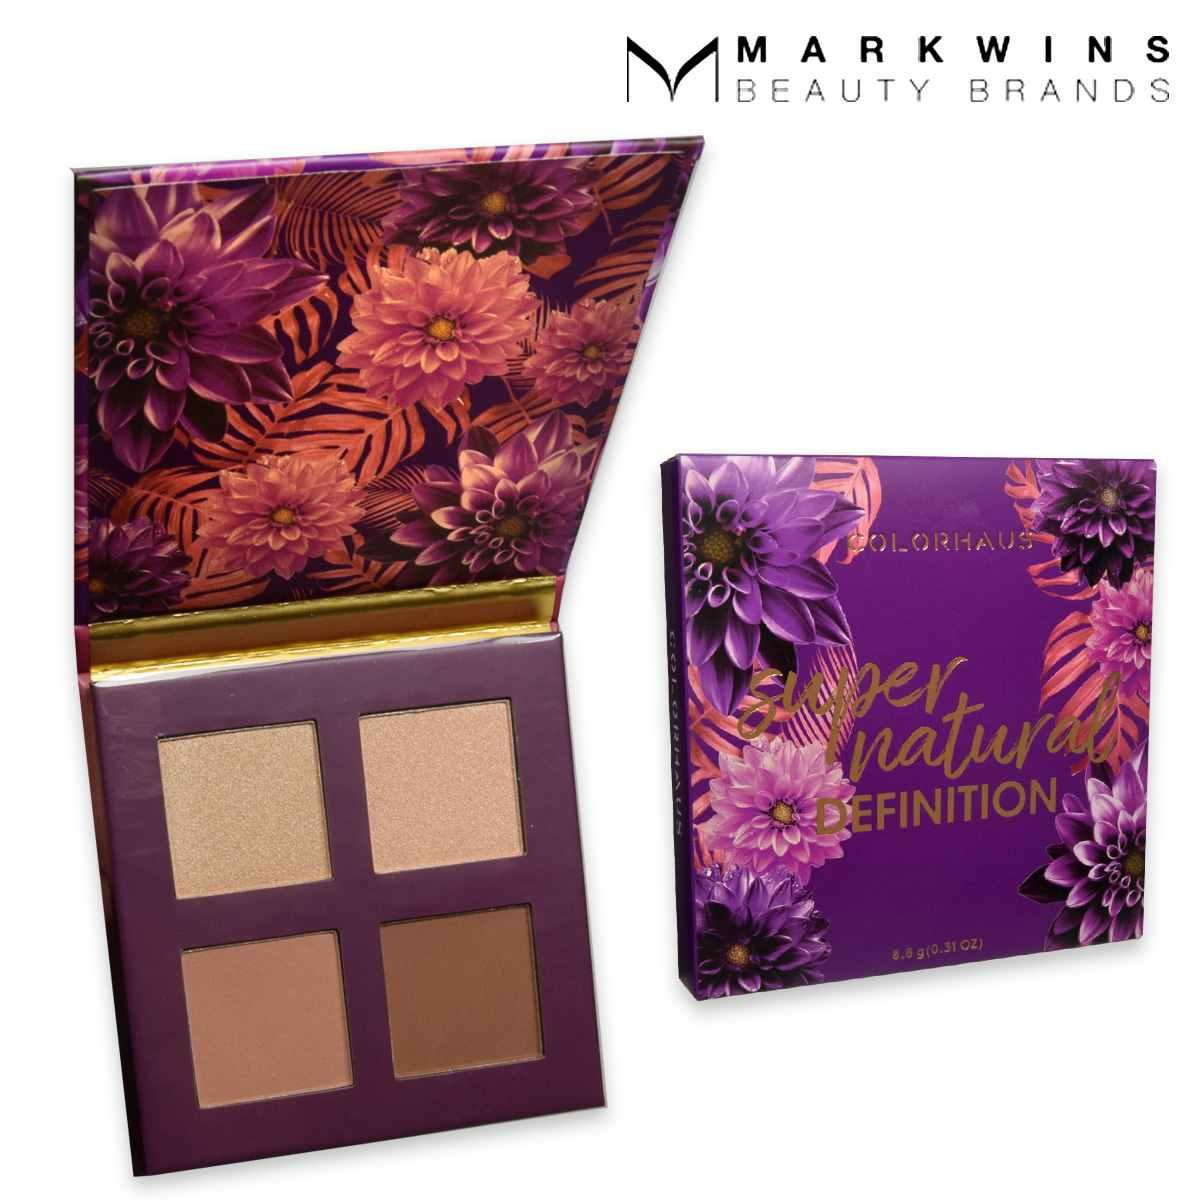 Markwins super natural definion